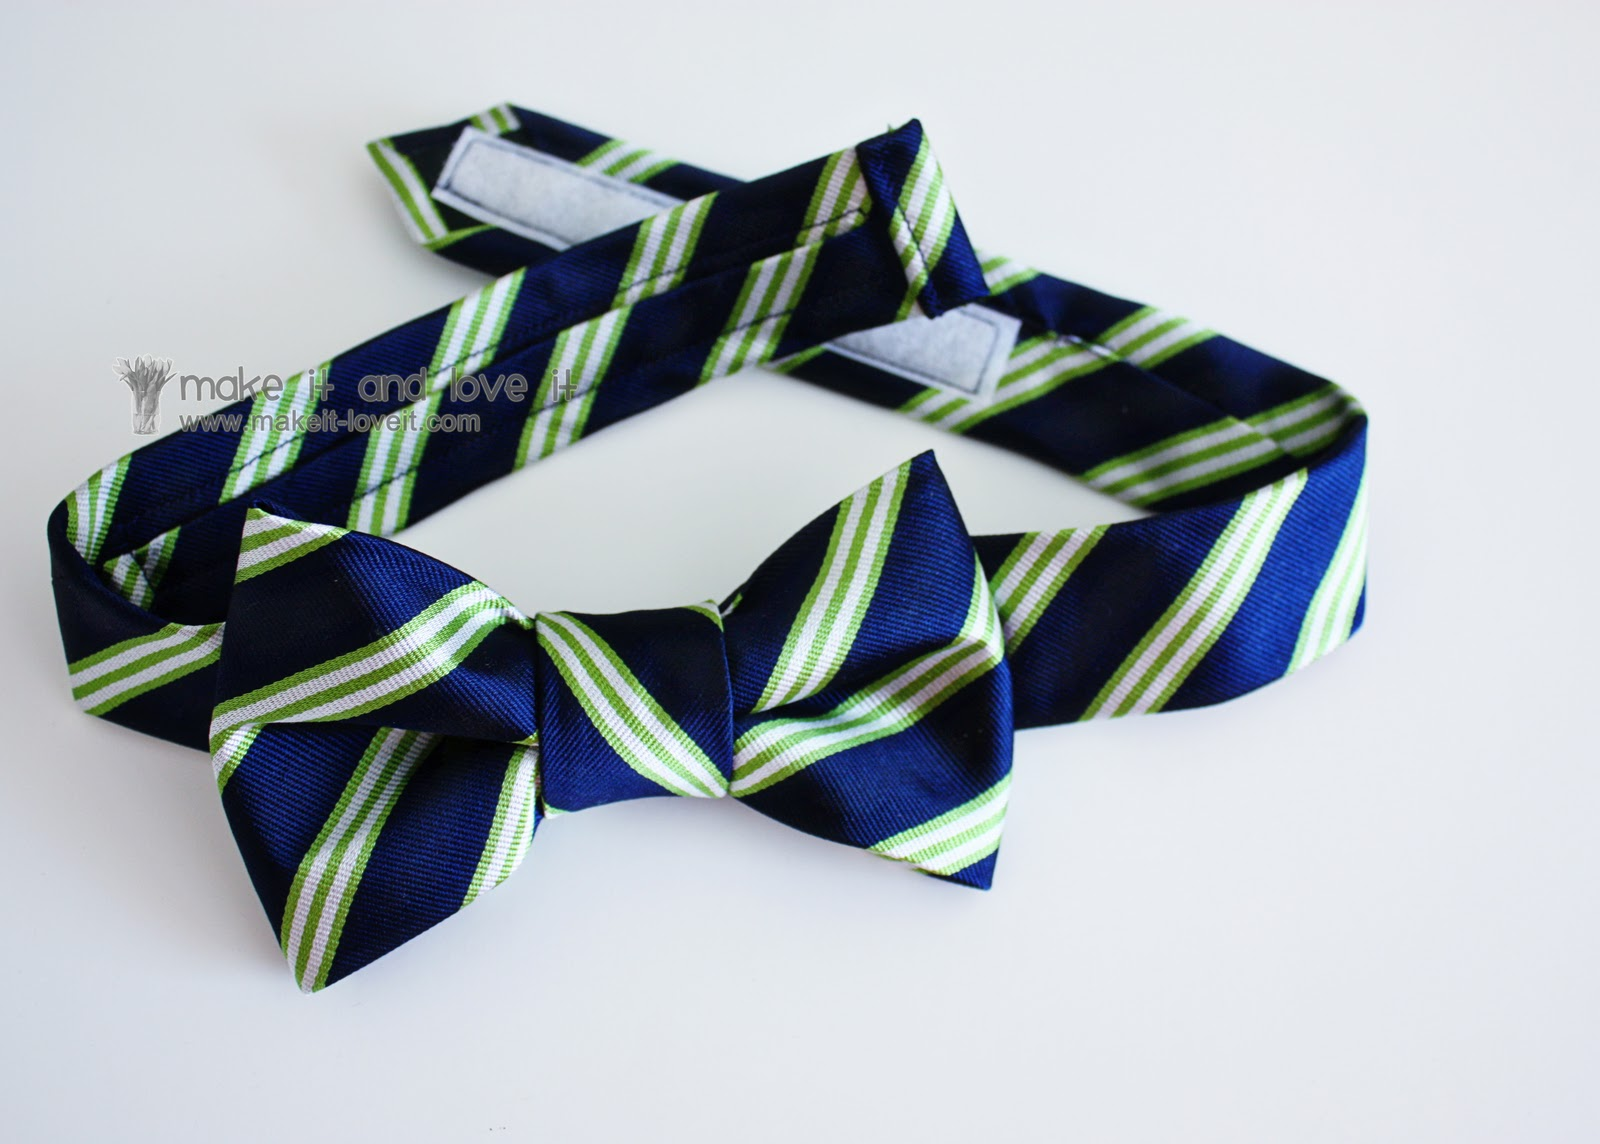 Repurposing: Neck Tie into Bow Tie | Make It and Love It